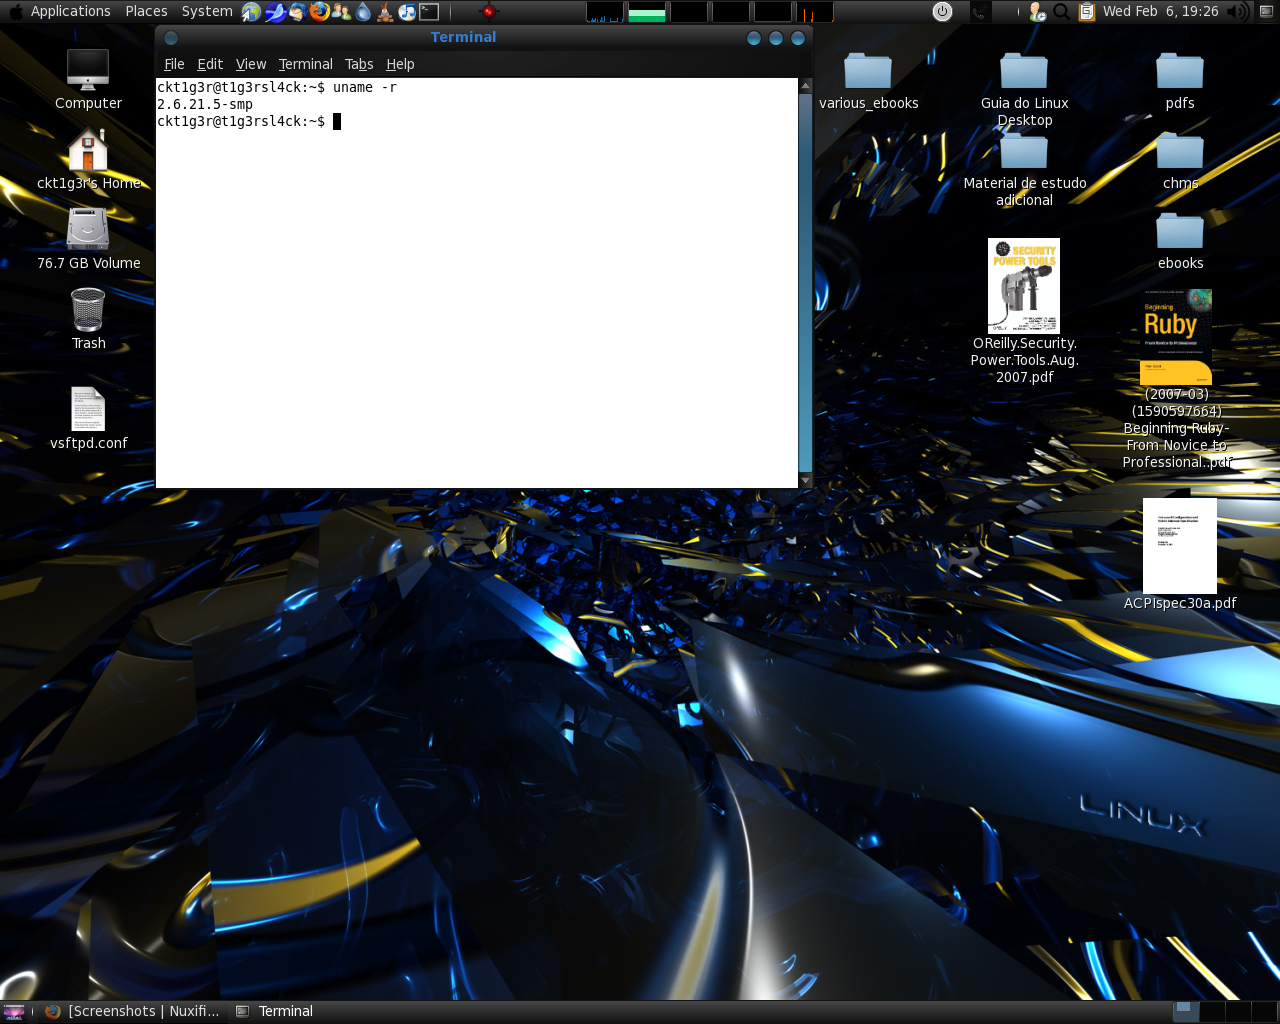 slackware 12.0 with gslacky 2.20.3